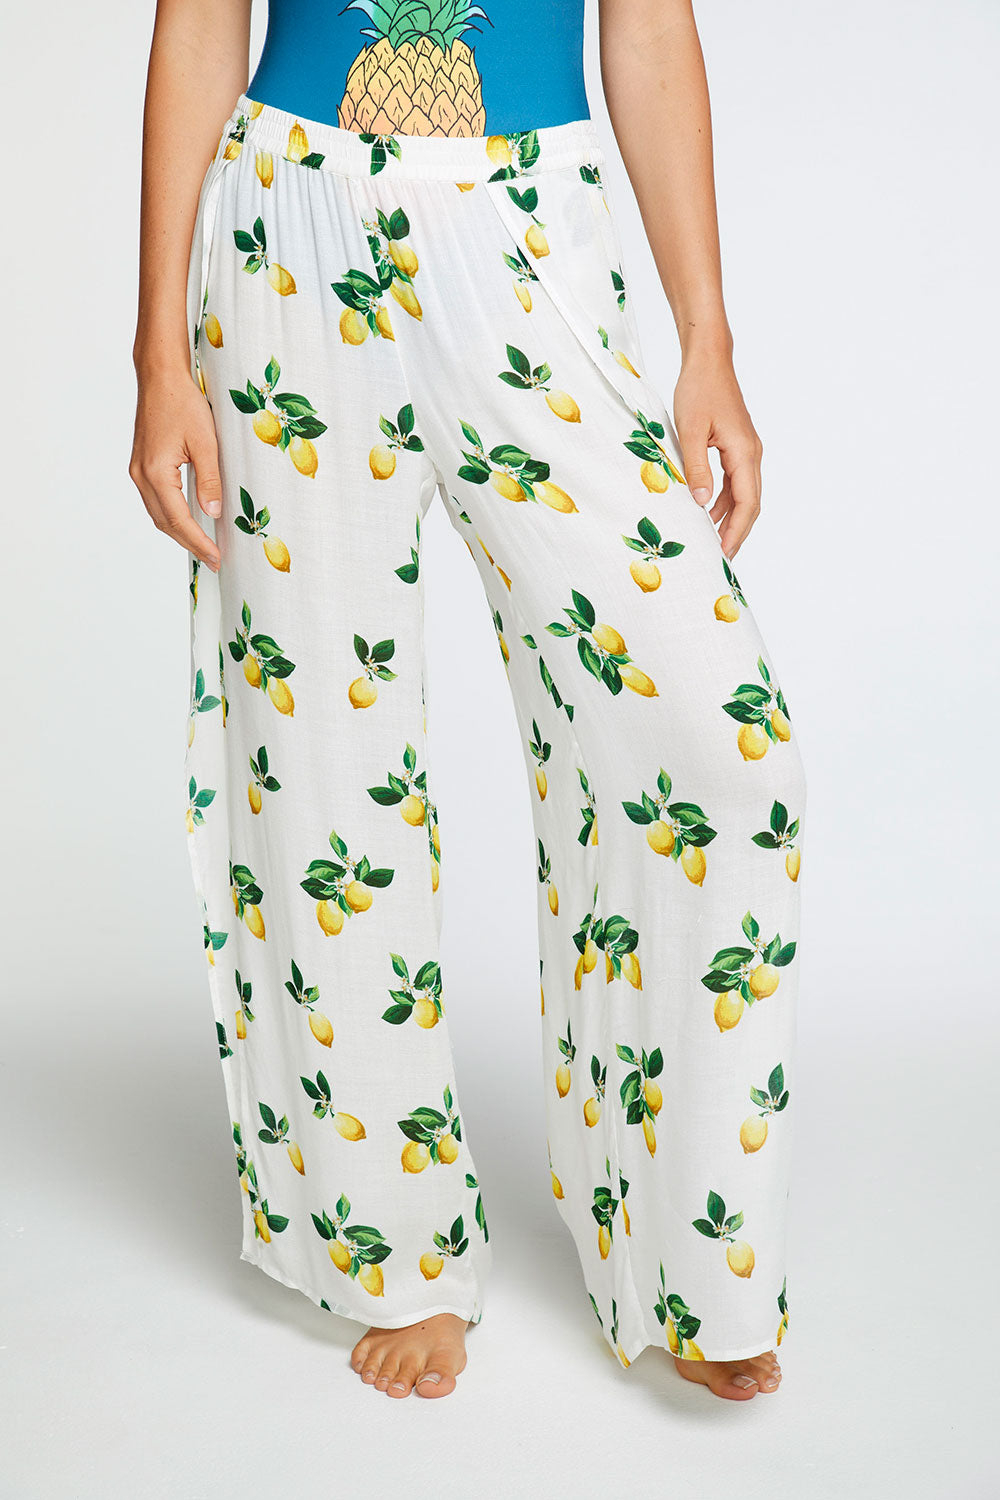 Lemonade Cover-Up Pants WOMENS - chaserbrand